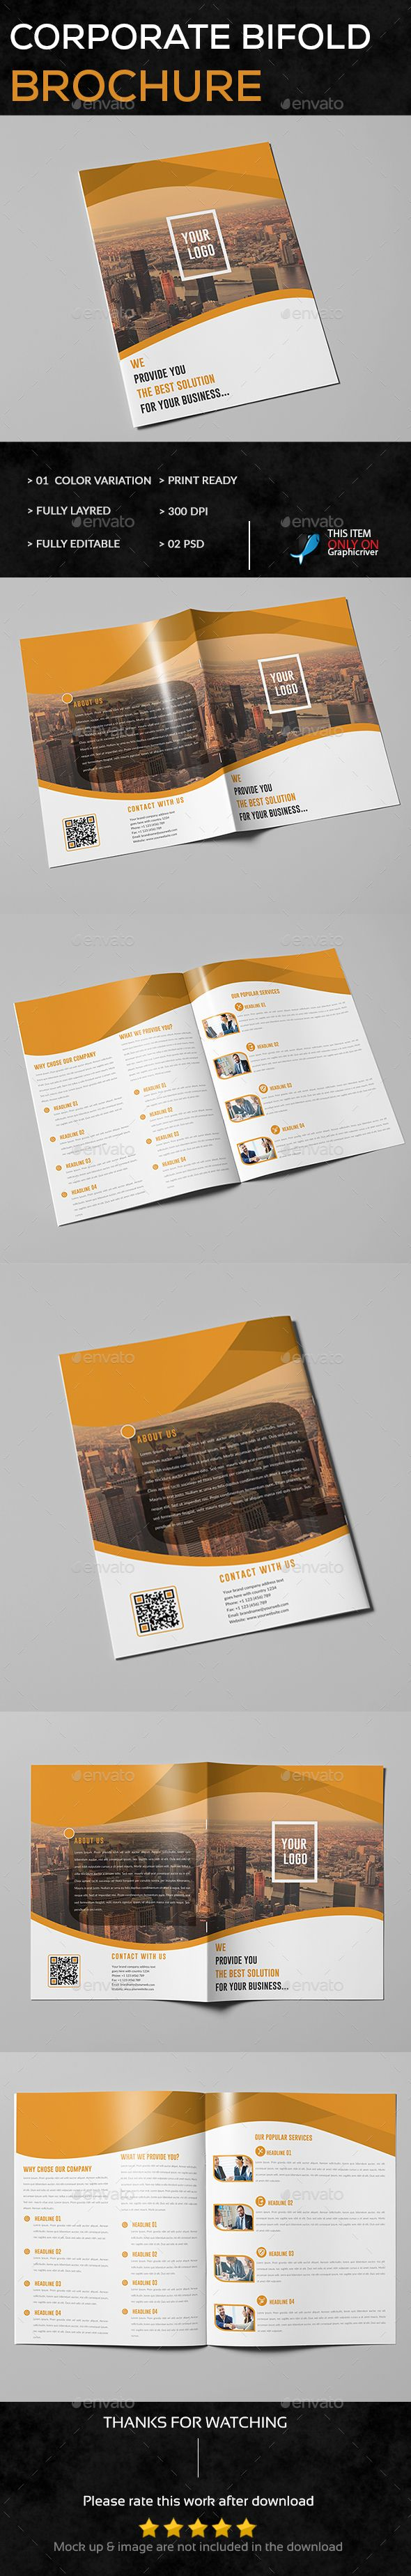 Corporate Trifold Brochure Template PSD